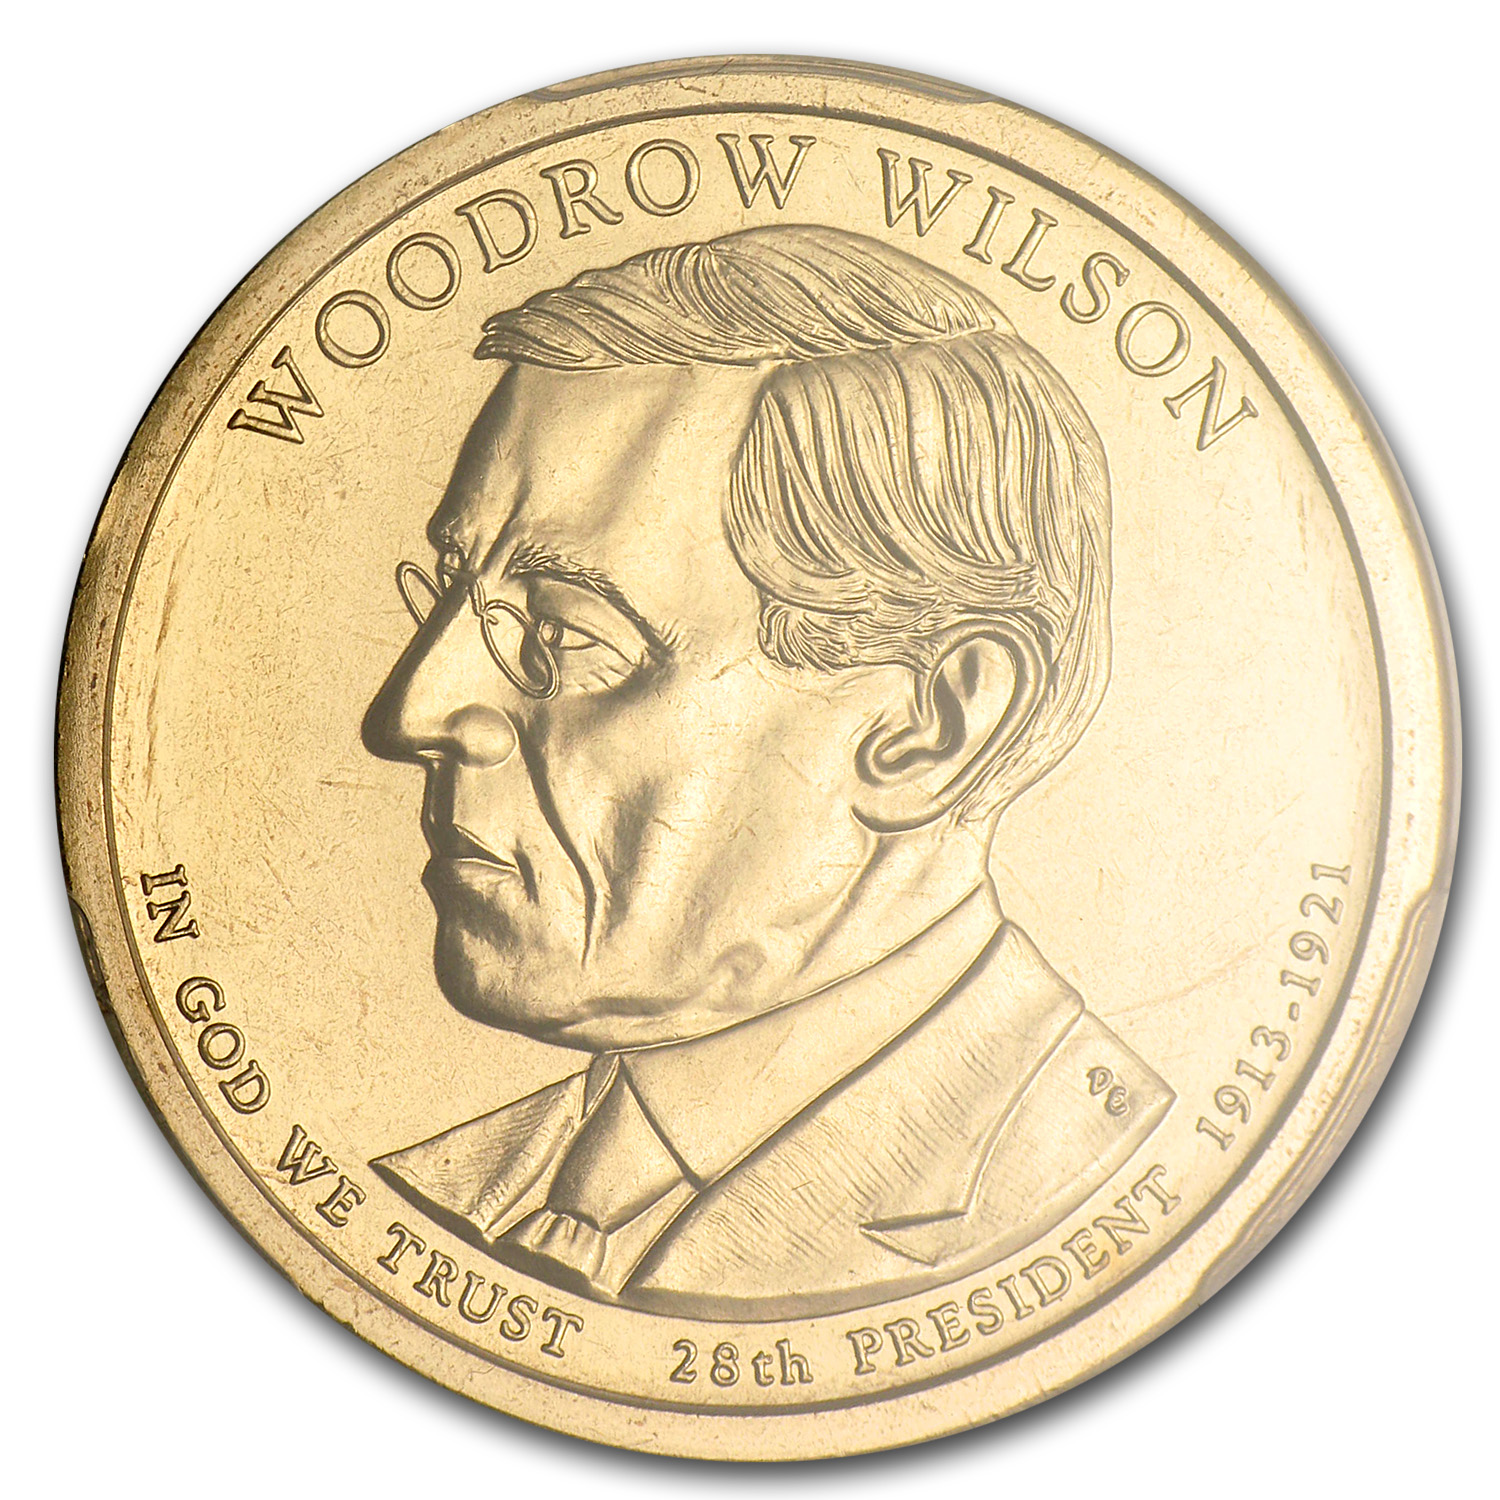 2013-P A Position Woodrow Wilson Presidential Dollar MS-66 PCGS